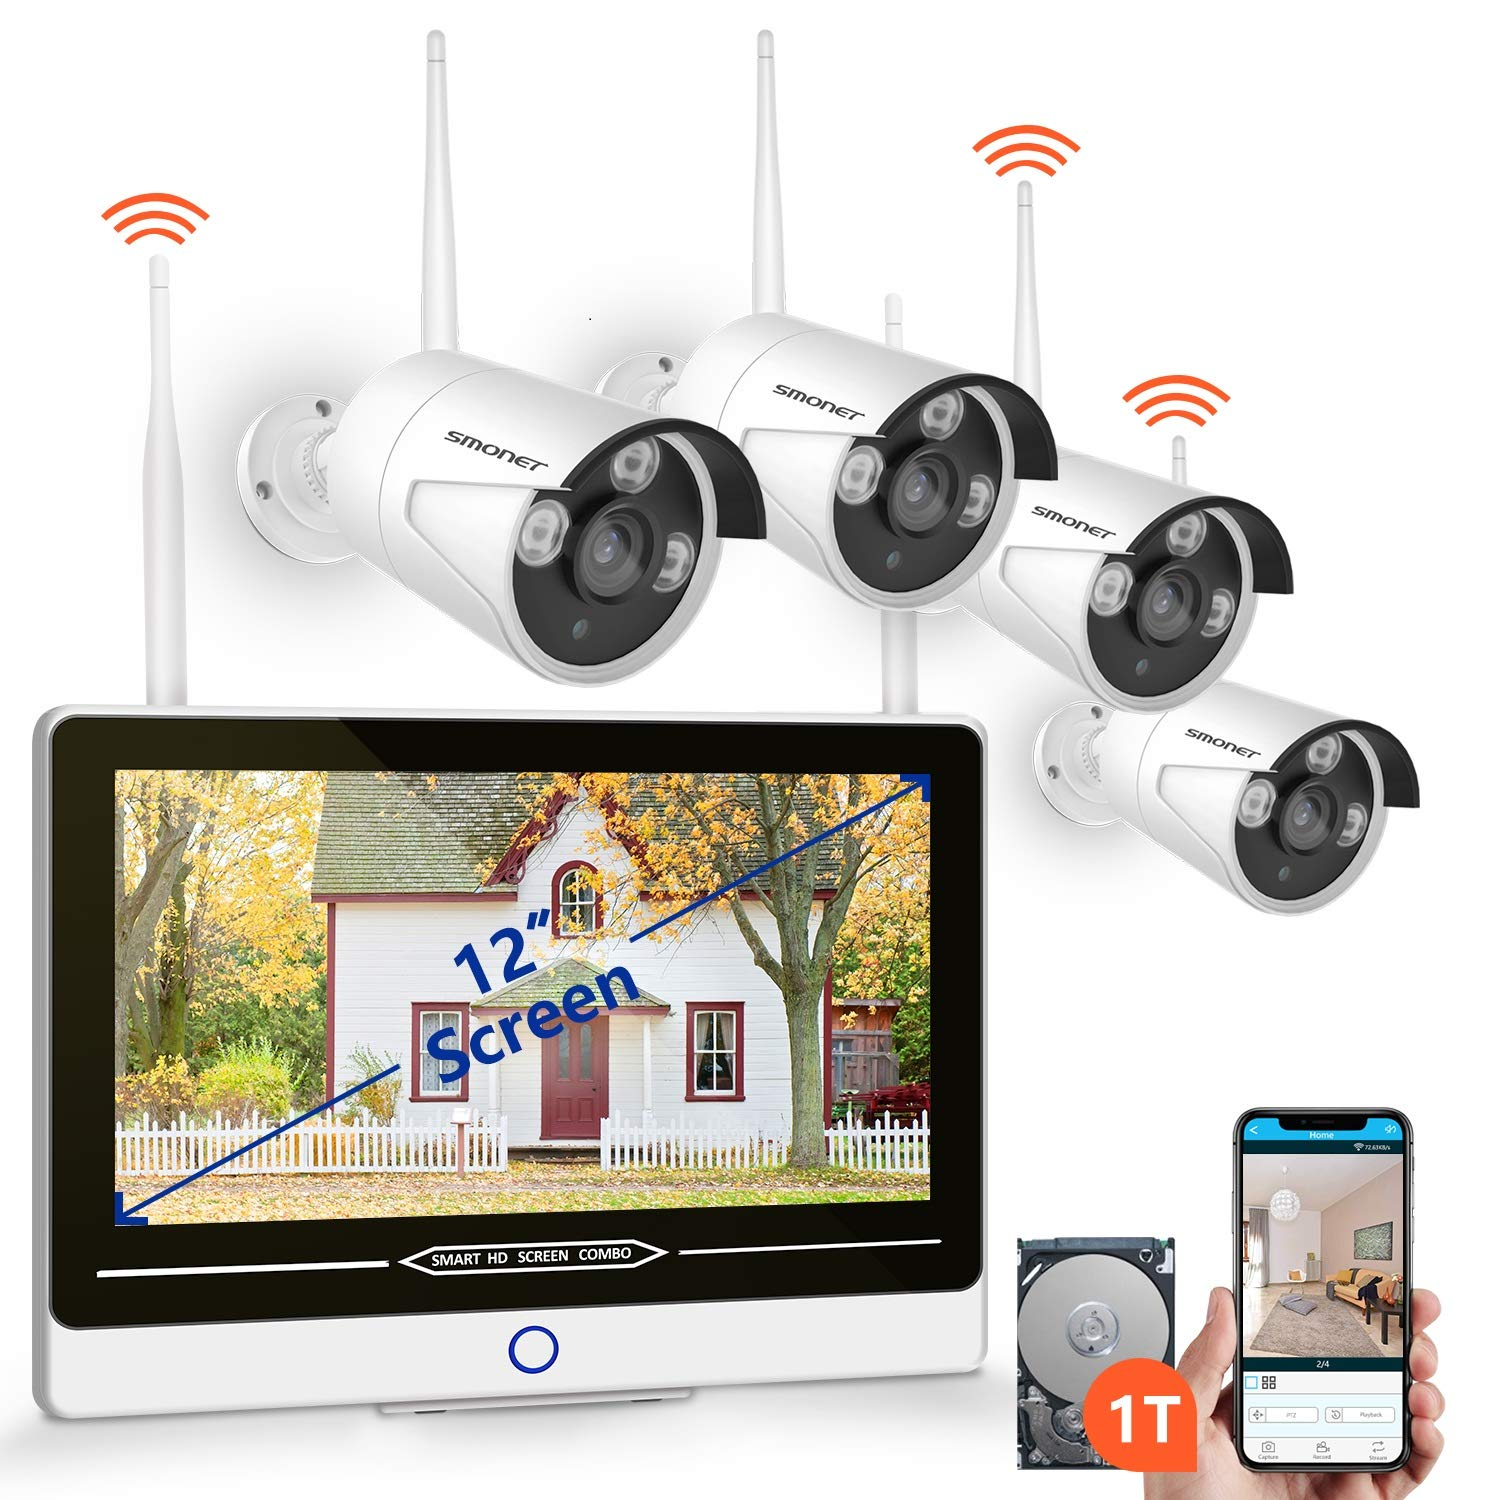 【2019 NEW】All in One with 12'' Monitor Security Camera System Wireless,SMONET 8-Channel 1080P Home Security System (1TB Hard Drive),4pcs 1.3MP Outdoor Wireless IP Cameras,P2P,Easy Remote View,Free APP by SMONET